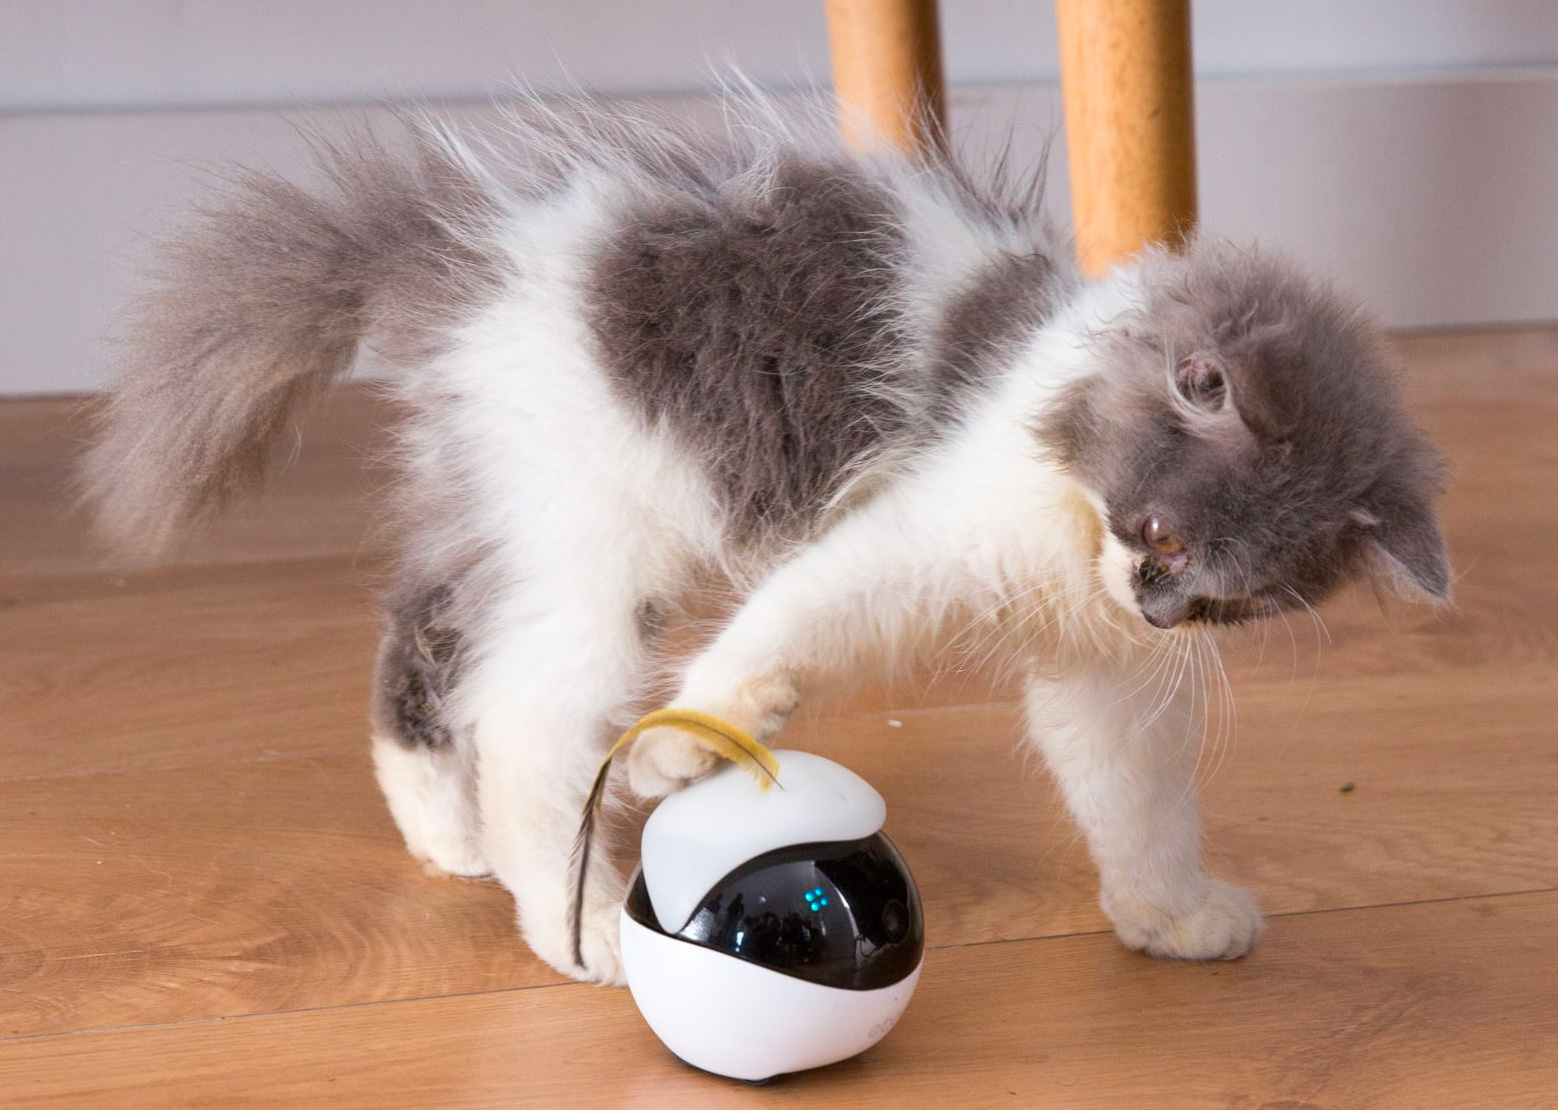 Ebo is a Robotic Playmate for Your Feline at werd.com